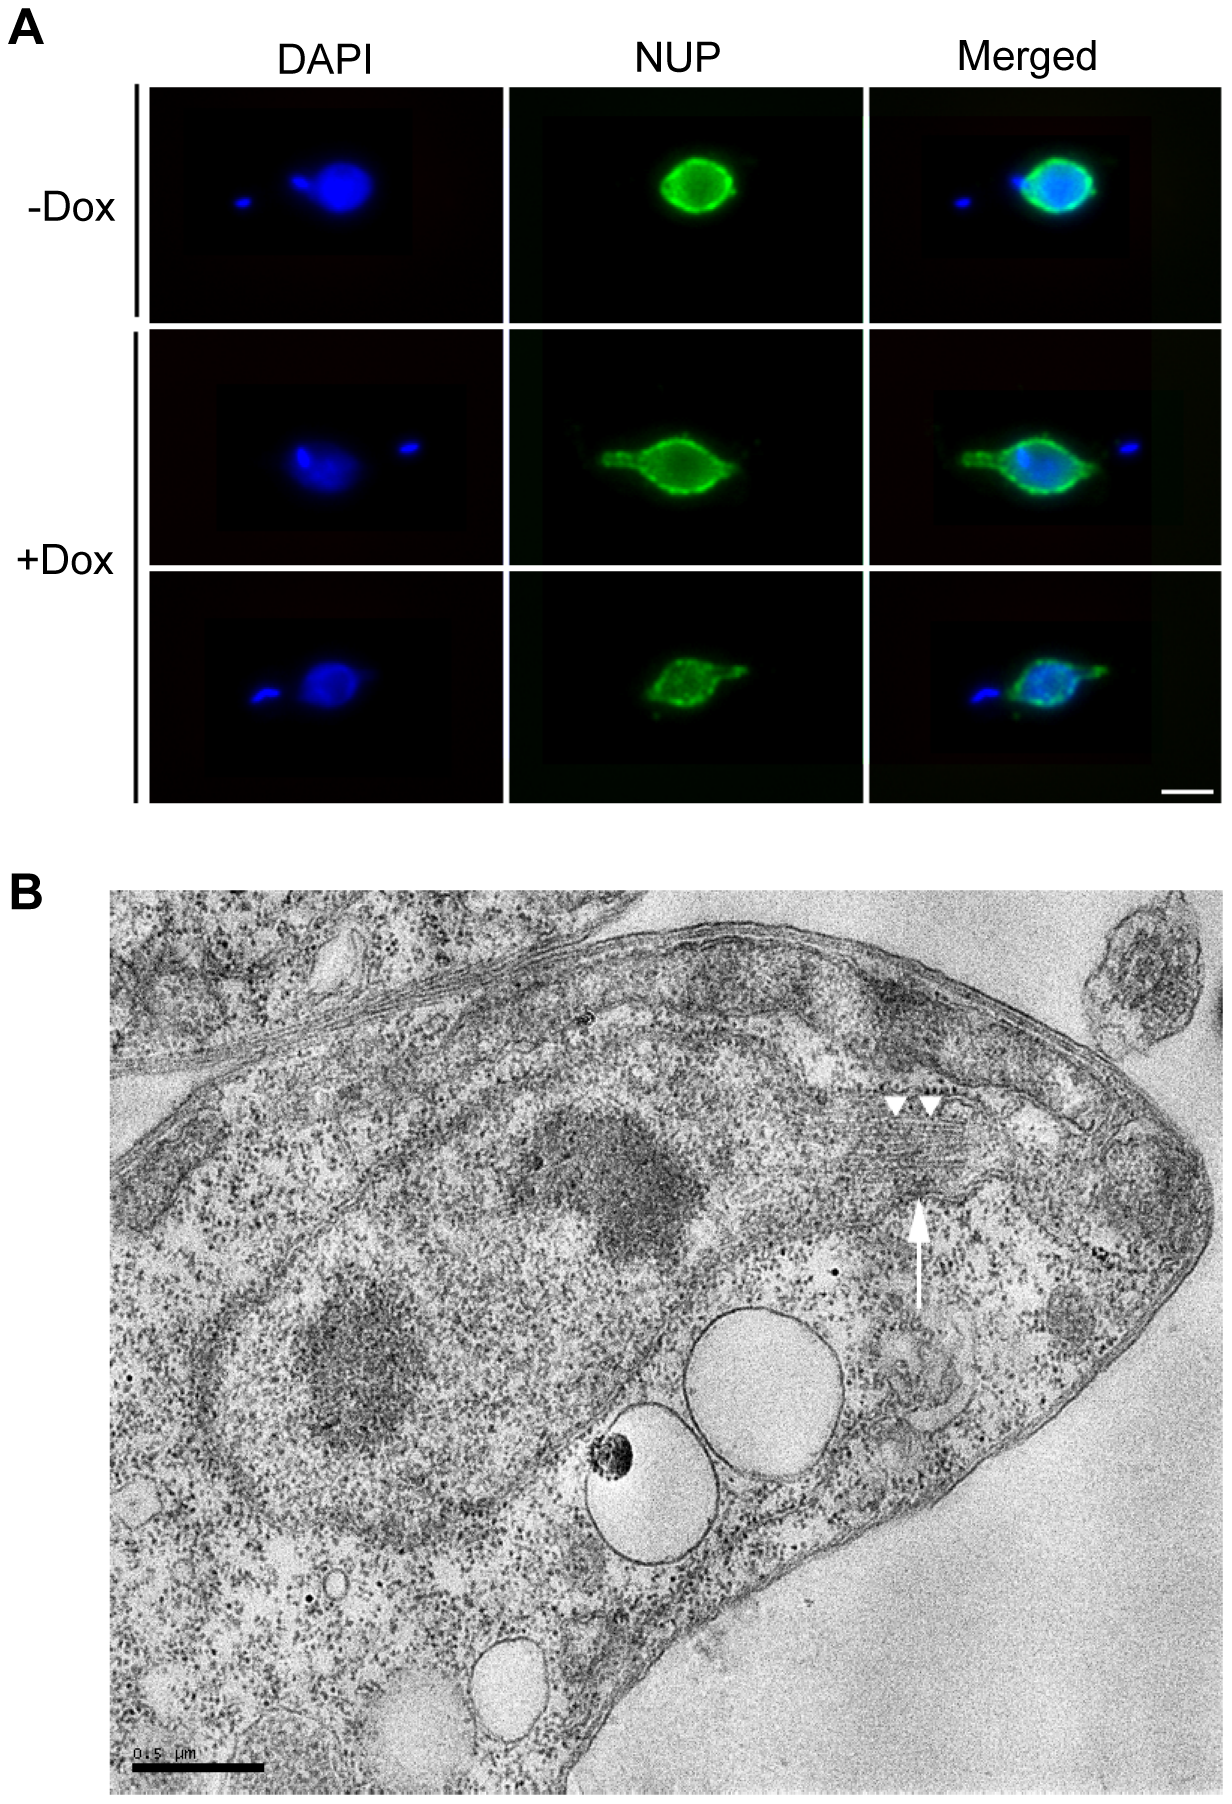 TbKif13-1 depletion results in protrusions of the nuclear envelope.